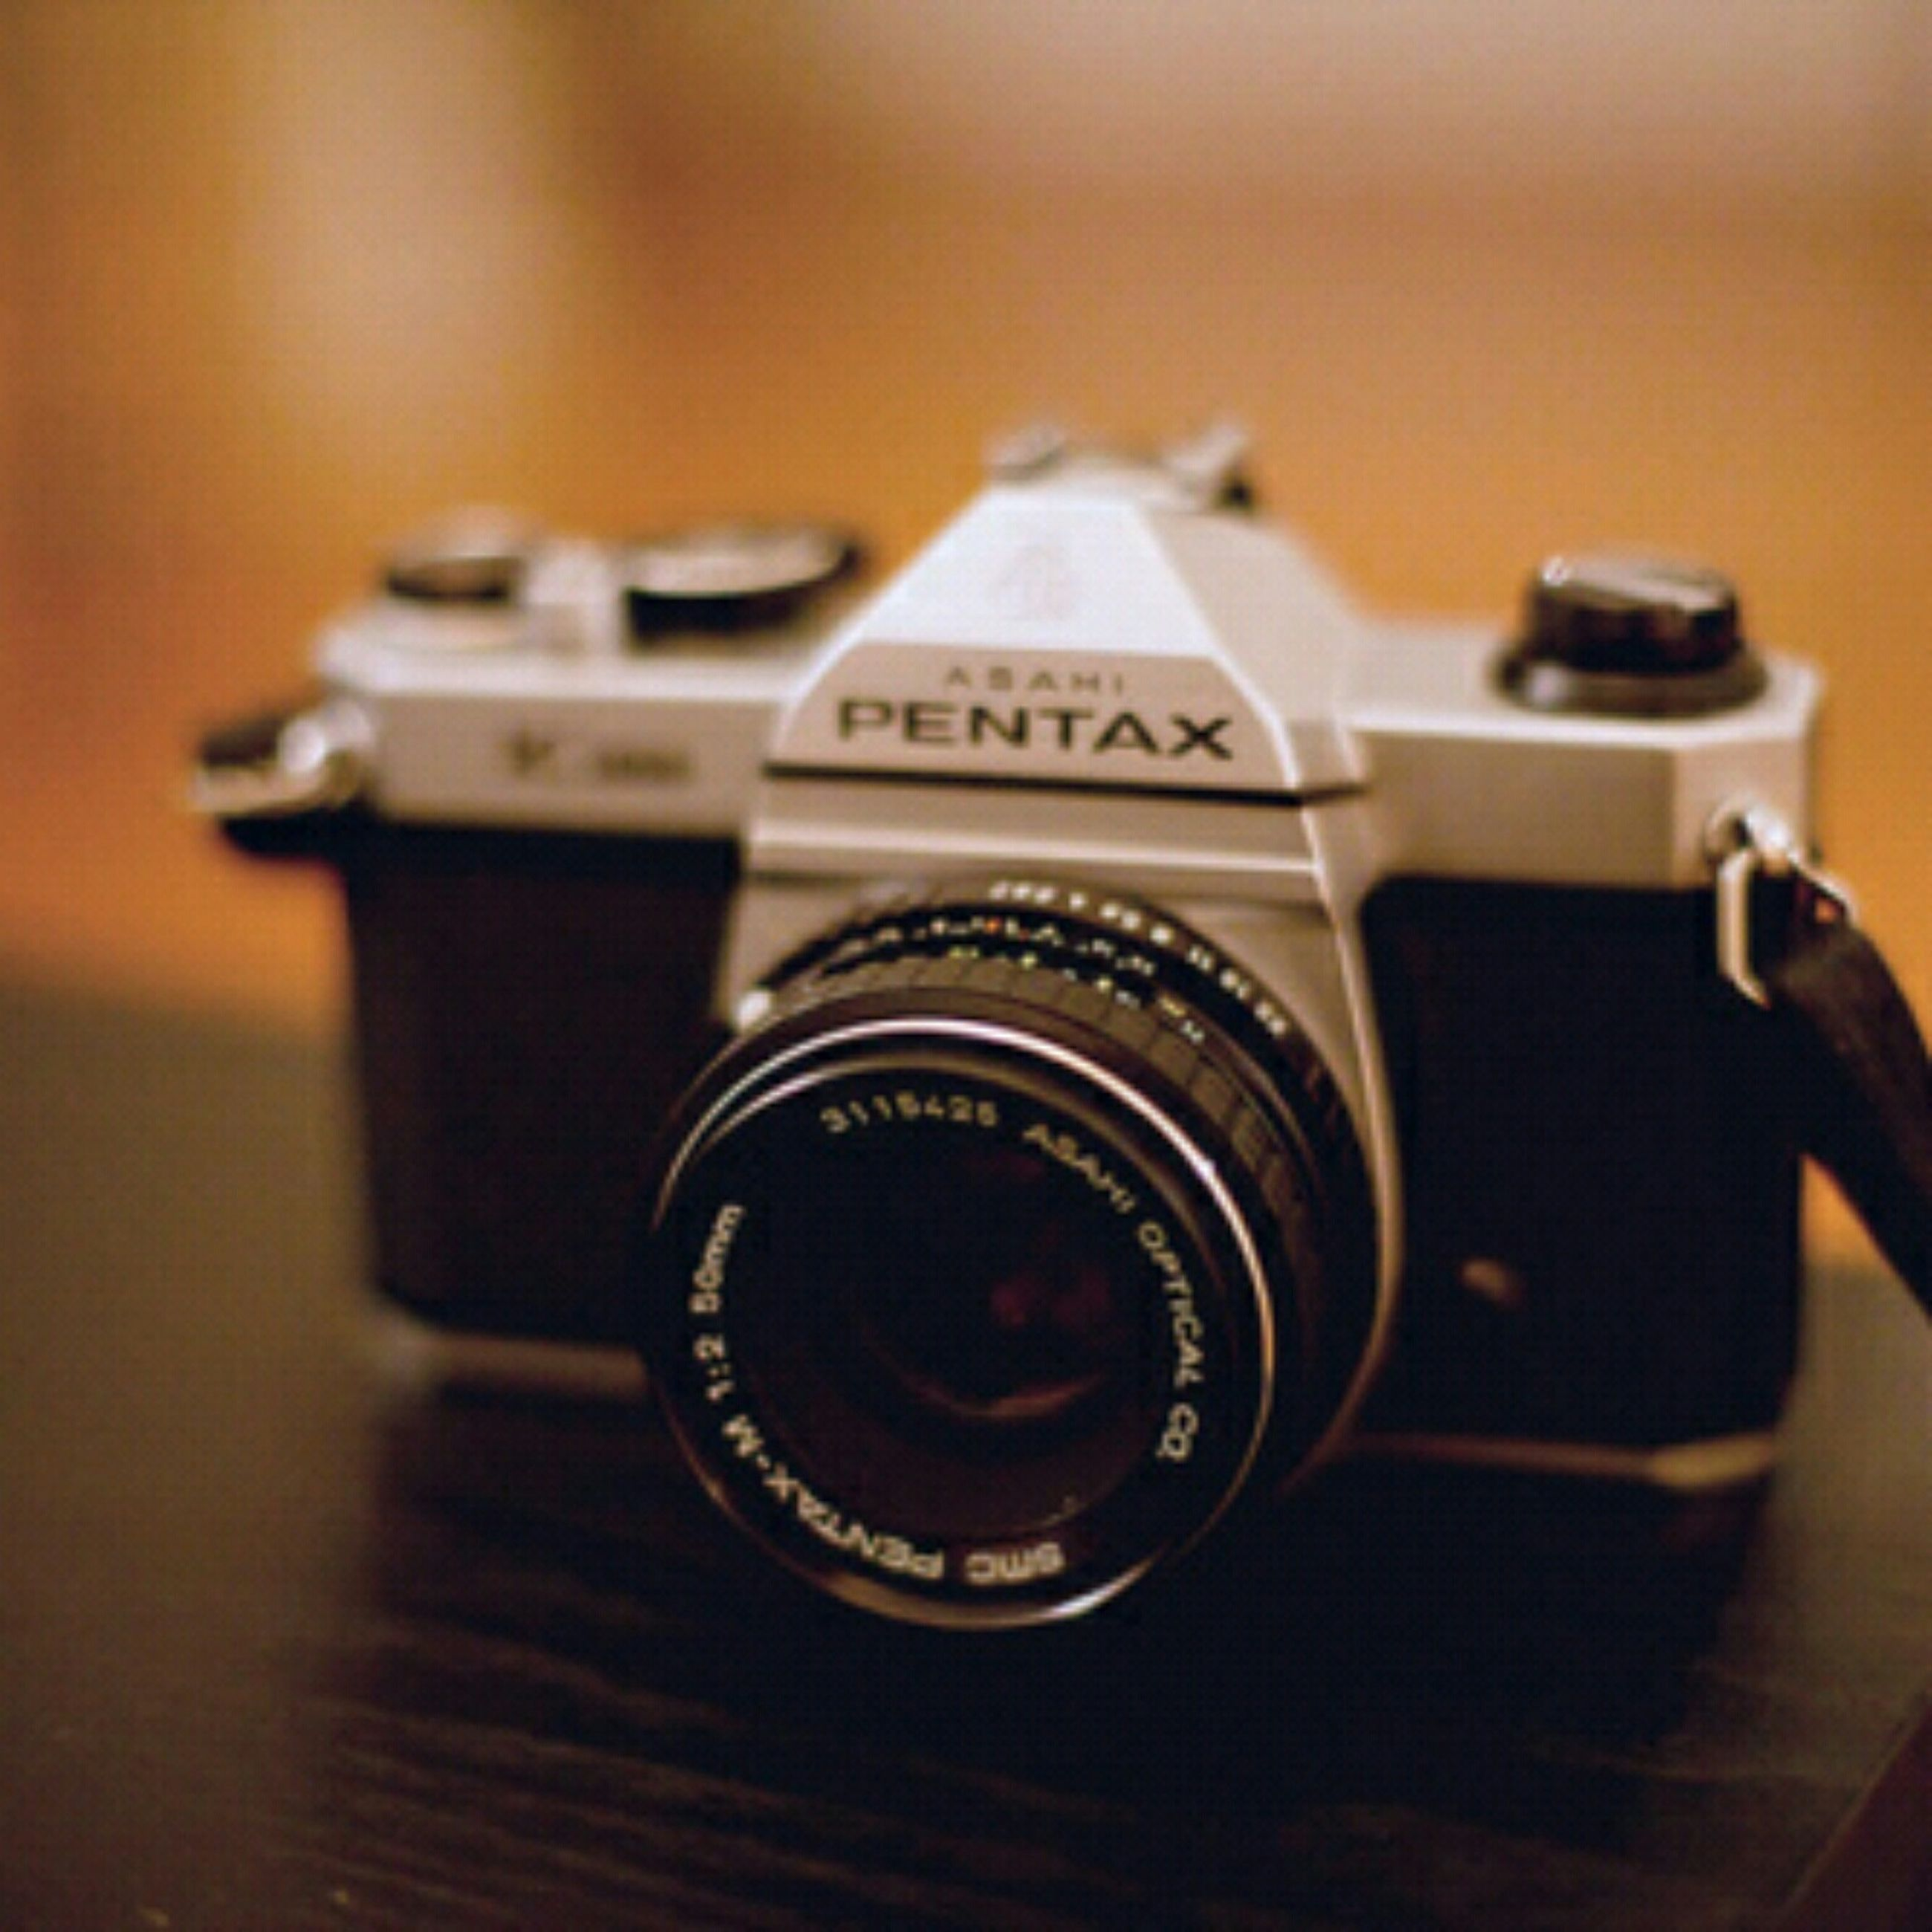 indoors, close-up, communication, technology, focus on foreground, photography themes, camera - photographic equipment, selective focus, single object, still life, text, table, old-fashioned, retro styled, western script, number, metal, music, lens - optical instrument, antique